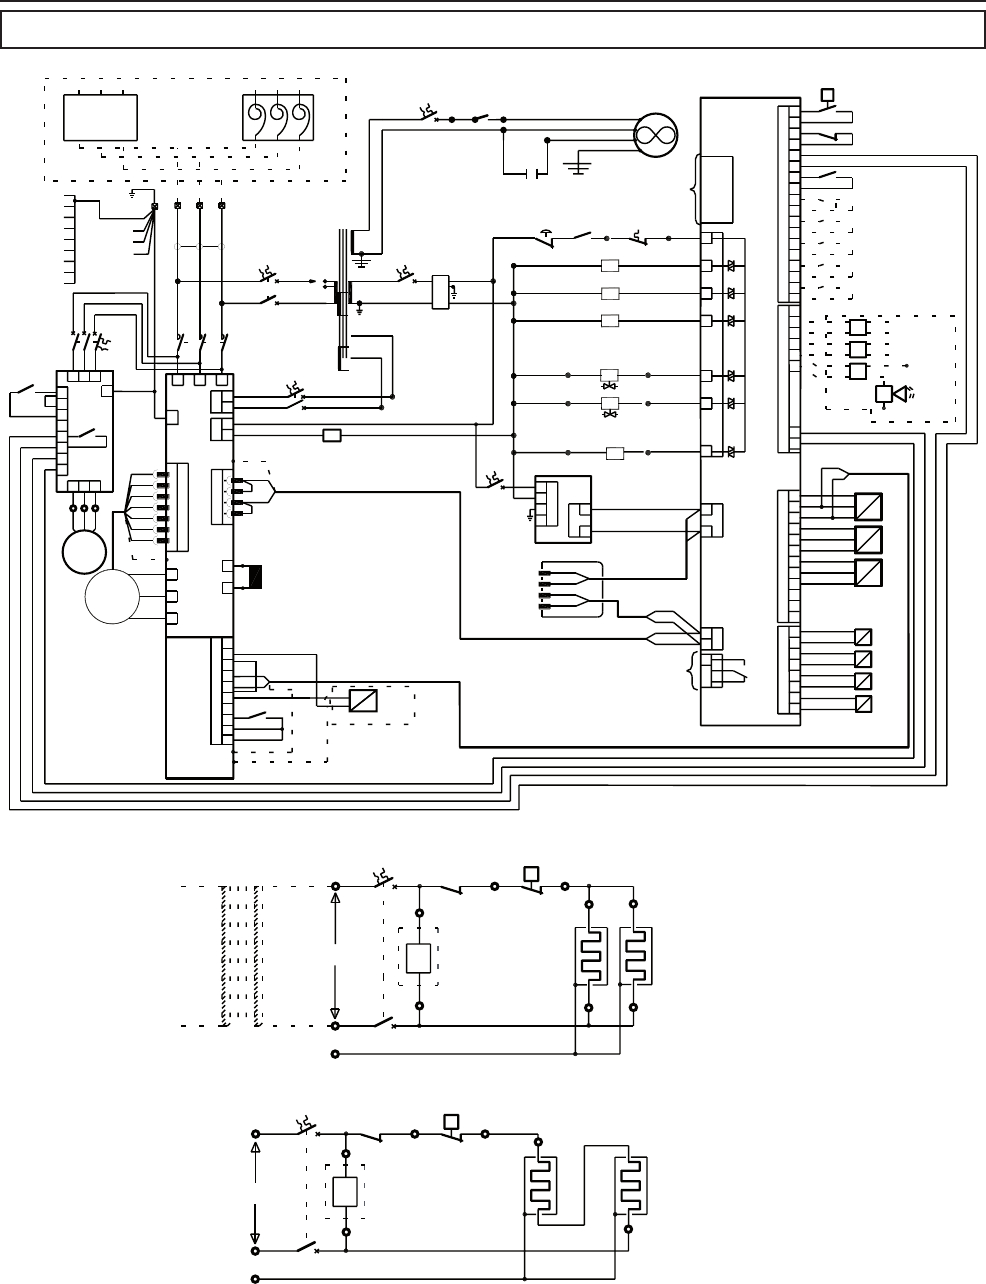 medium resolution of ingersoll rand wiring schematic wiring diagram for you ingersoll rand air compressor wiring diagram collection wiring